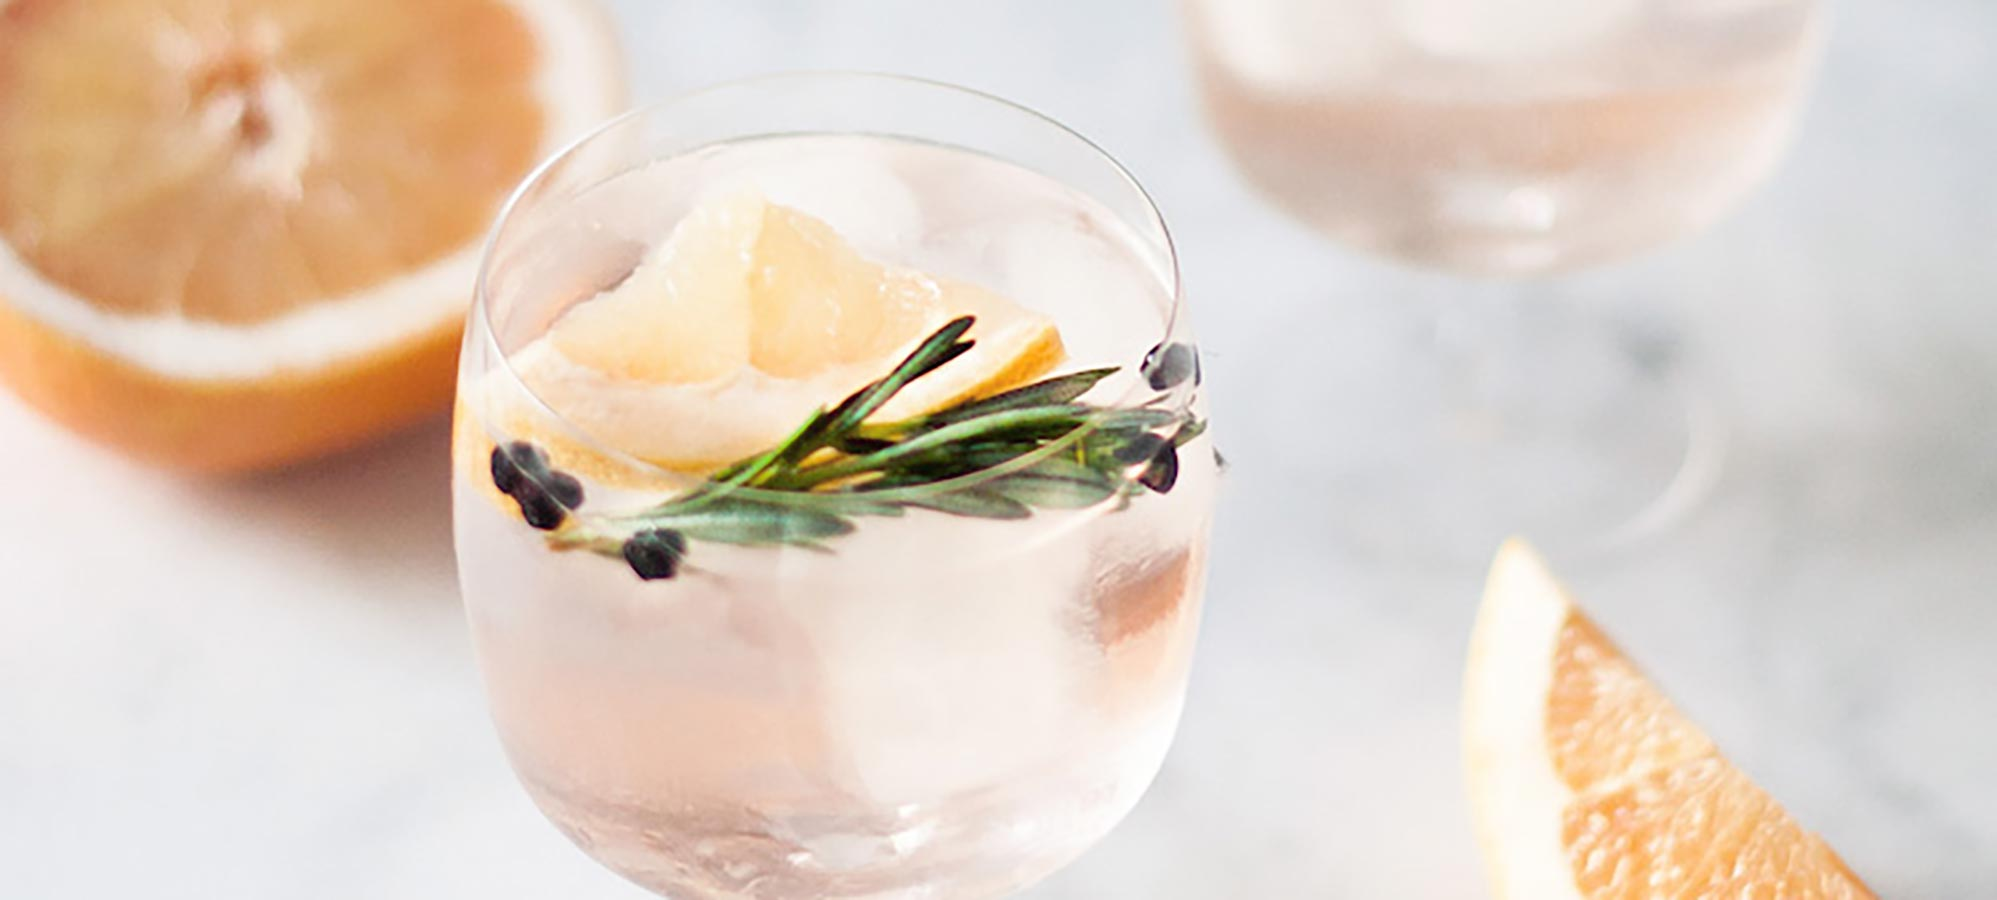 Low calorie alcoholic drinks which are diet friendly - Woman